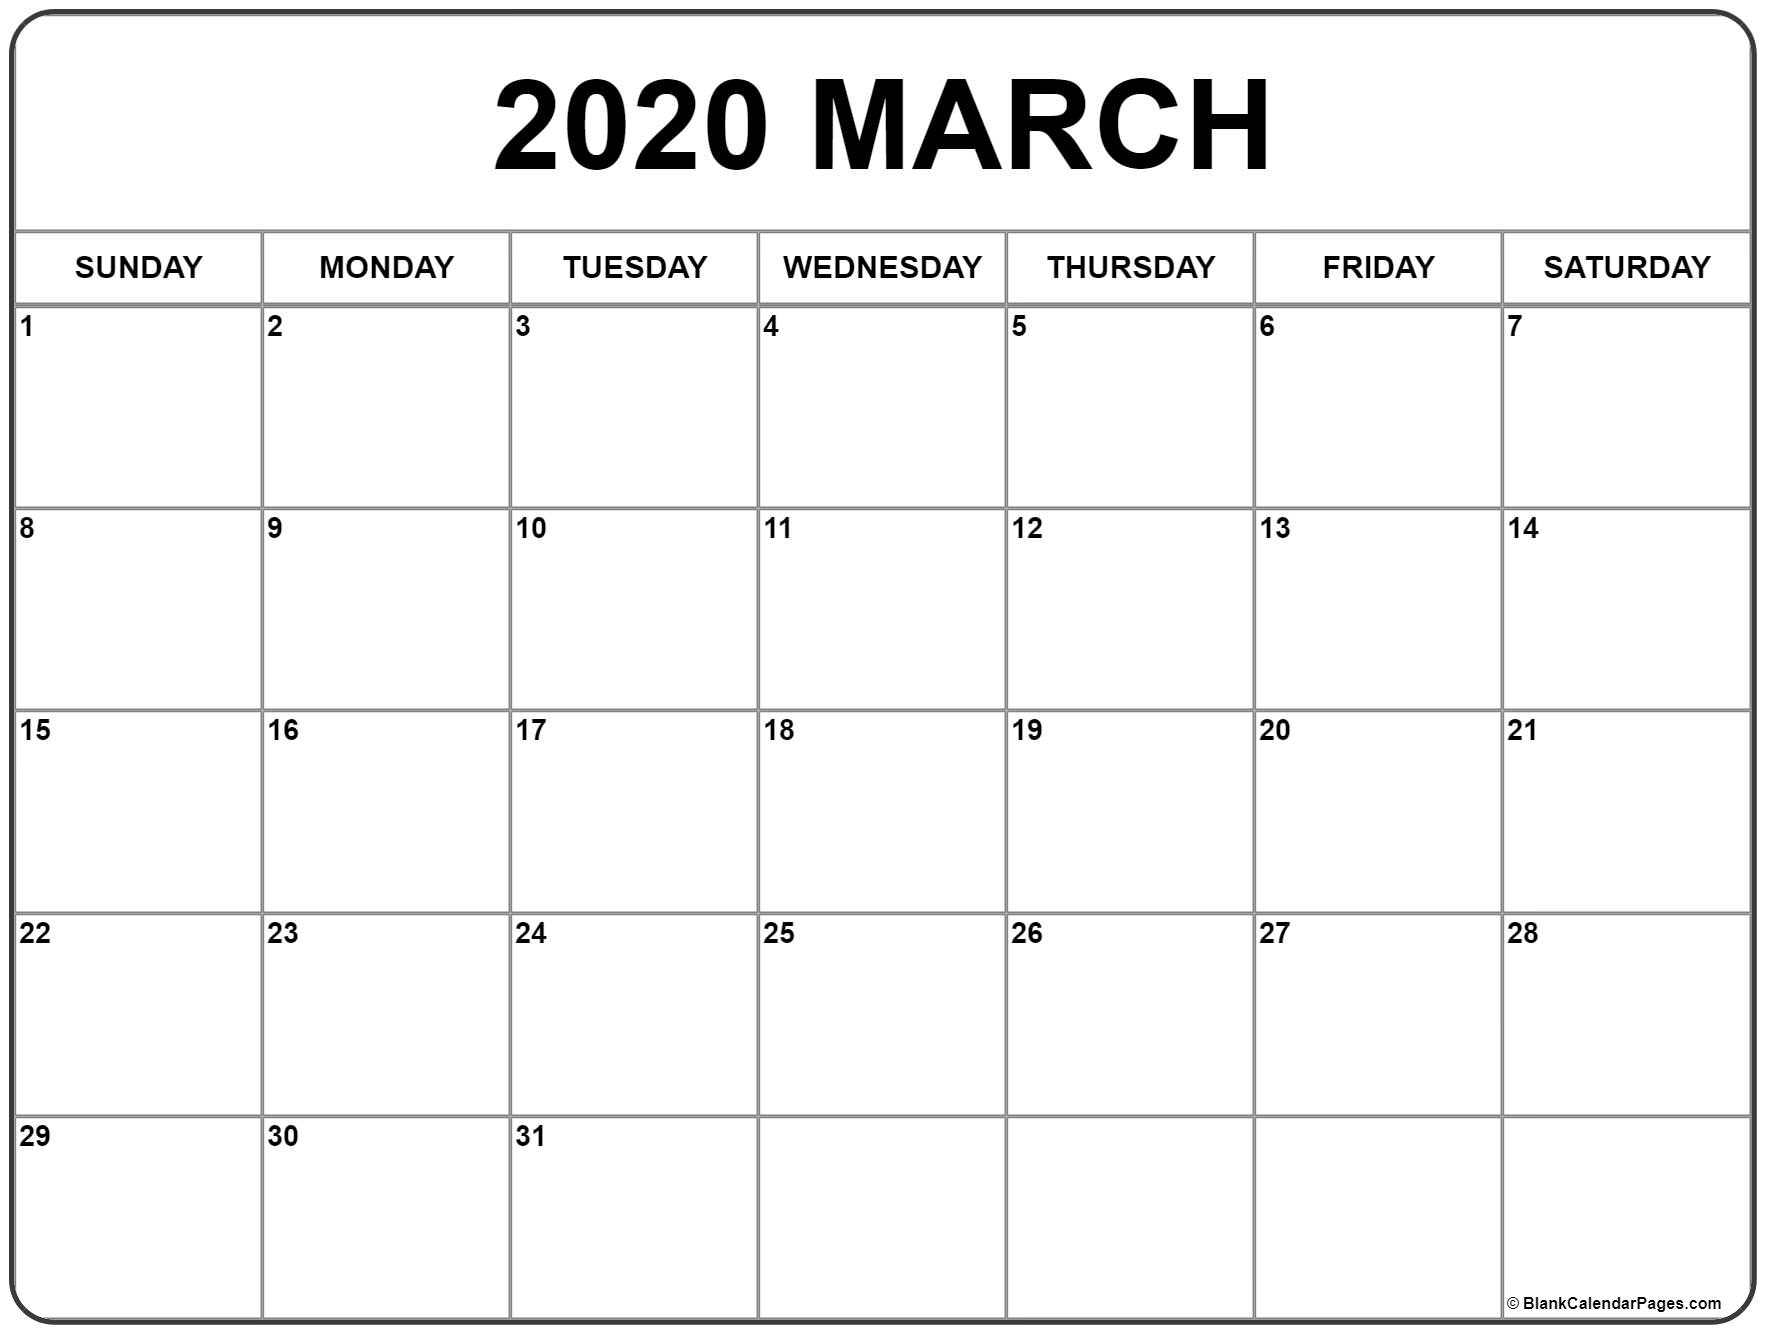 March 2020 Calendar | Free Printable Monthly Calendars in 2020 Calendar With Space To Write